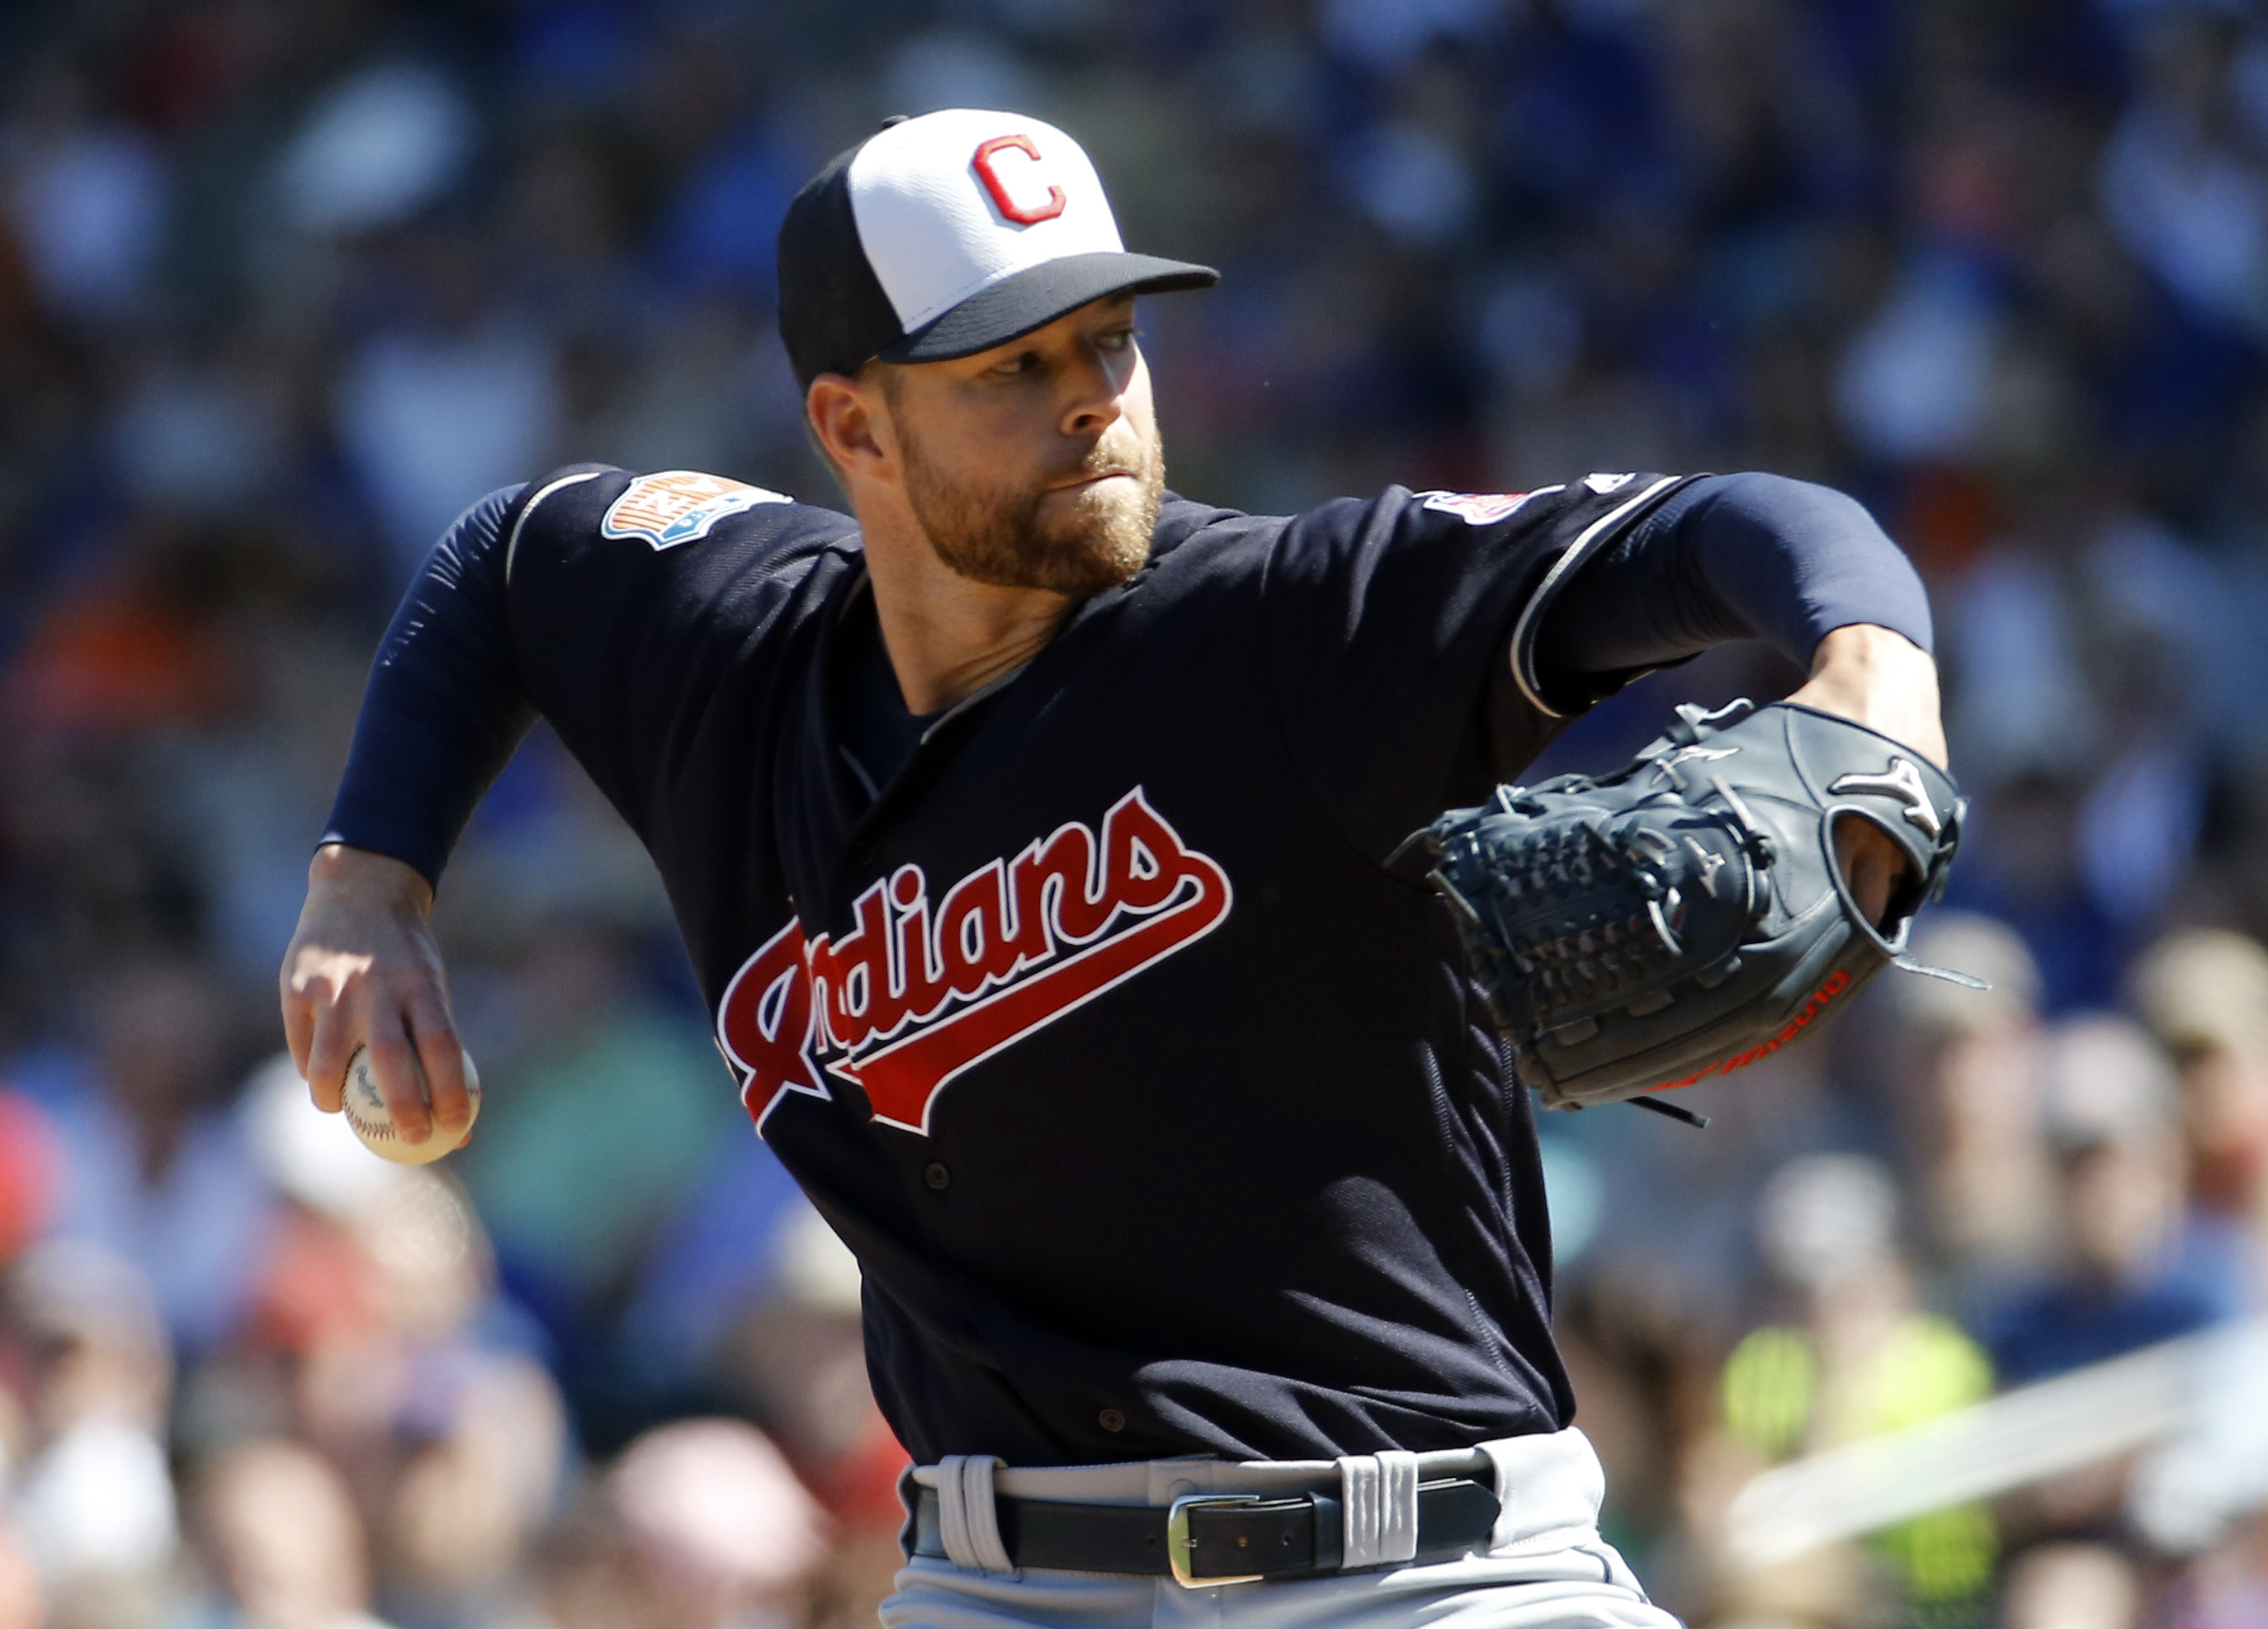 FILE - This March 9, 2016 file photo shows Cleveland Indians' Corey Kluber throwing during the first inning of a spring training baseball game against the Chicago Cubs, in Mesa, Ariz. They've got perhaps baseball's deepest rotation, one of its finest mana